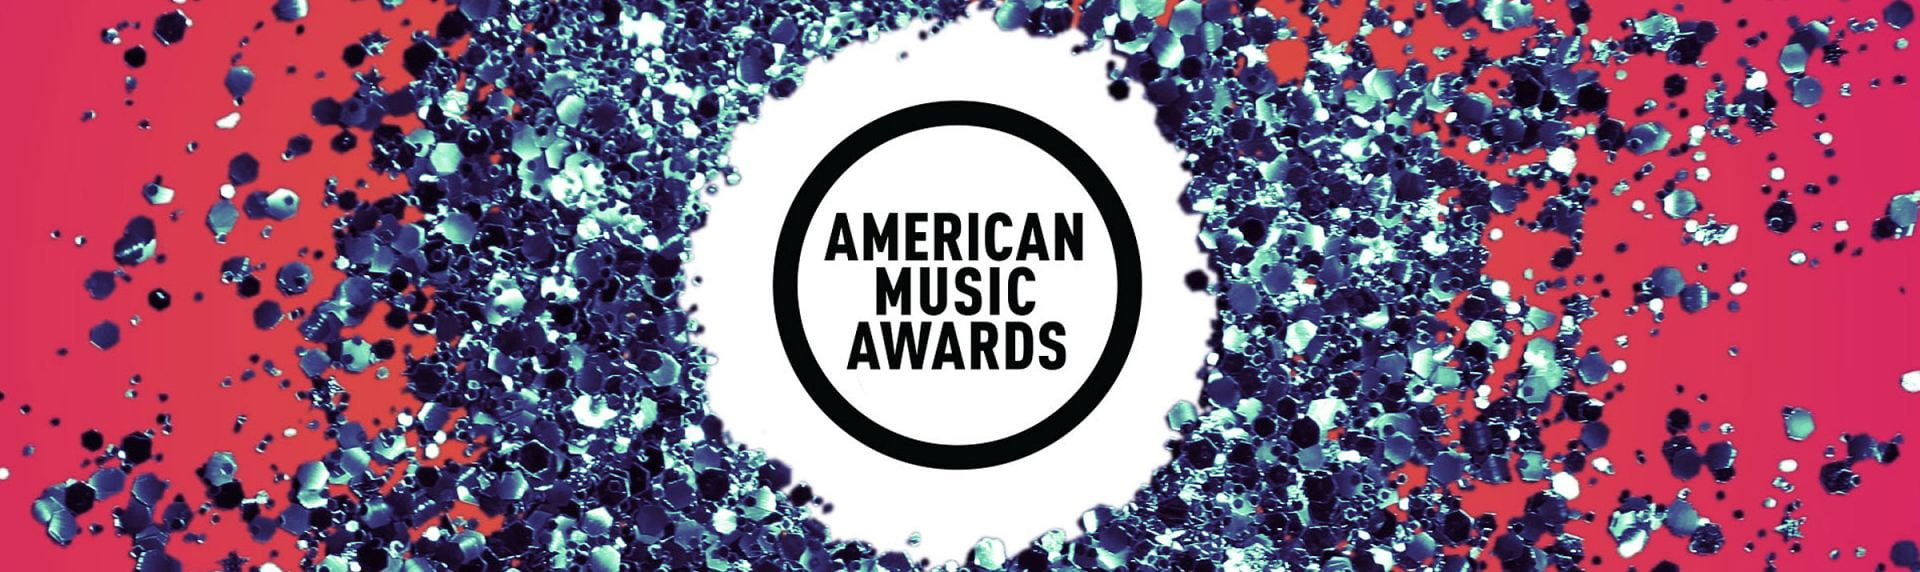 American Music Awards Advertisement